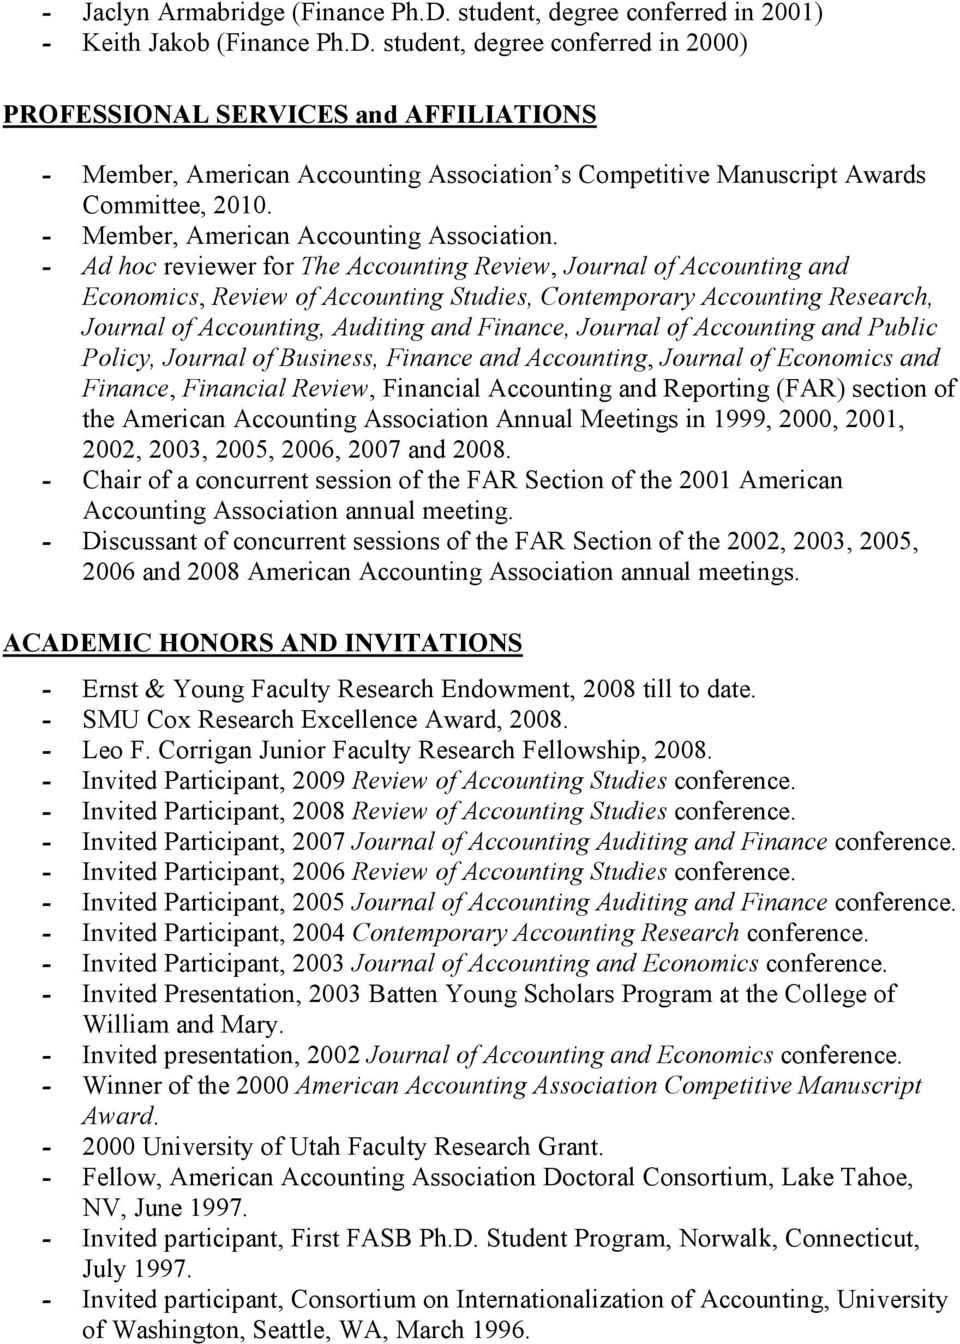 - Ad hoc reviewer for The Accounting Review, Journal of Accounting and Economics, Review of Accounting Studies, Contemporary Accounting Research, Journal of Accounting, Auditing and Finance, Journal